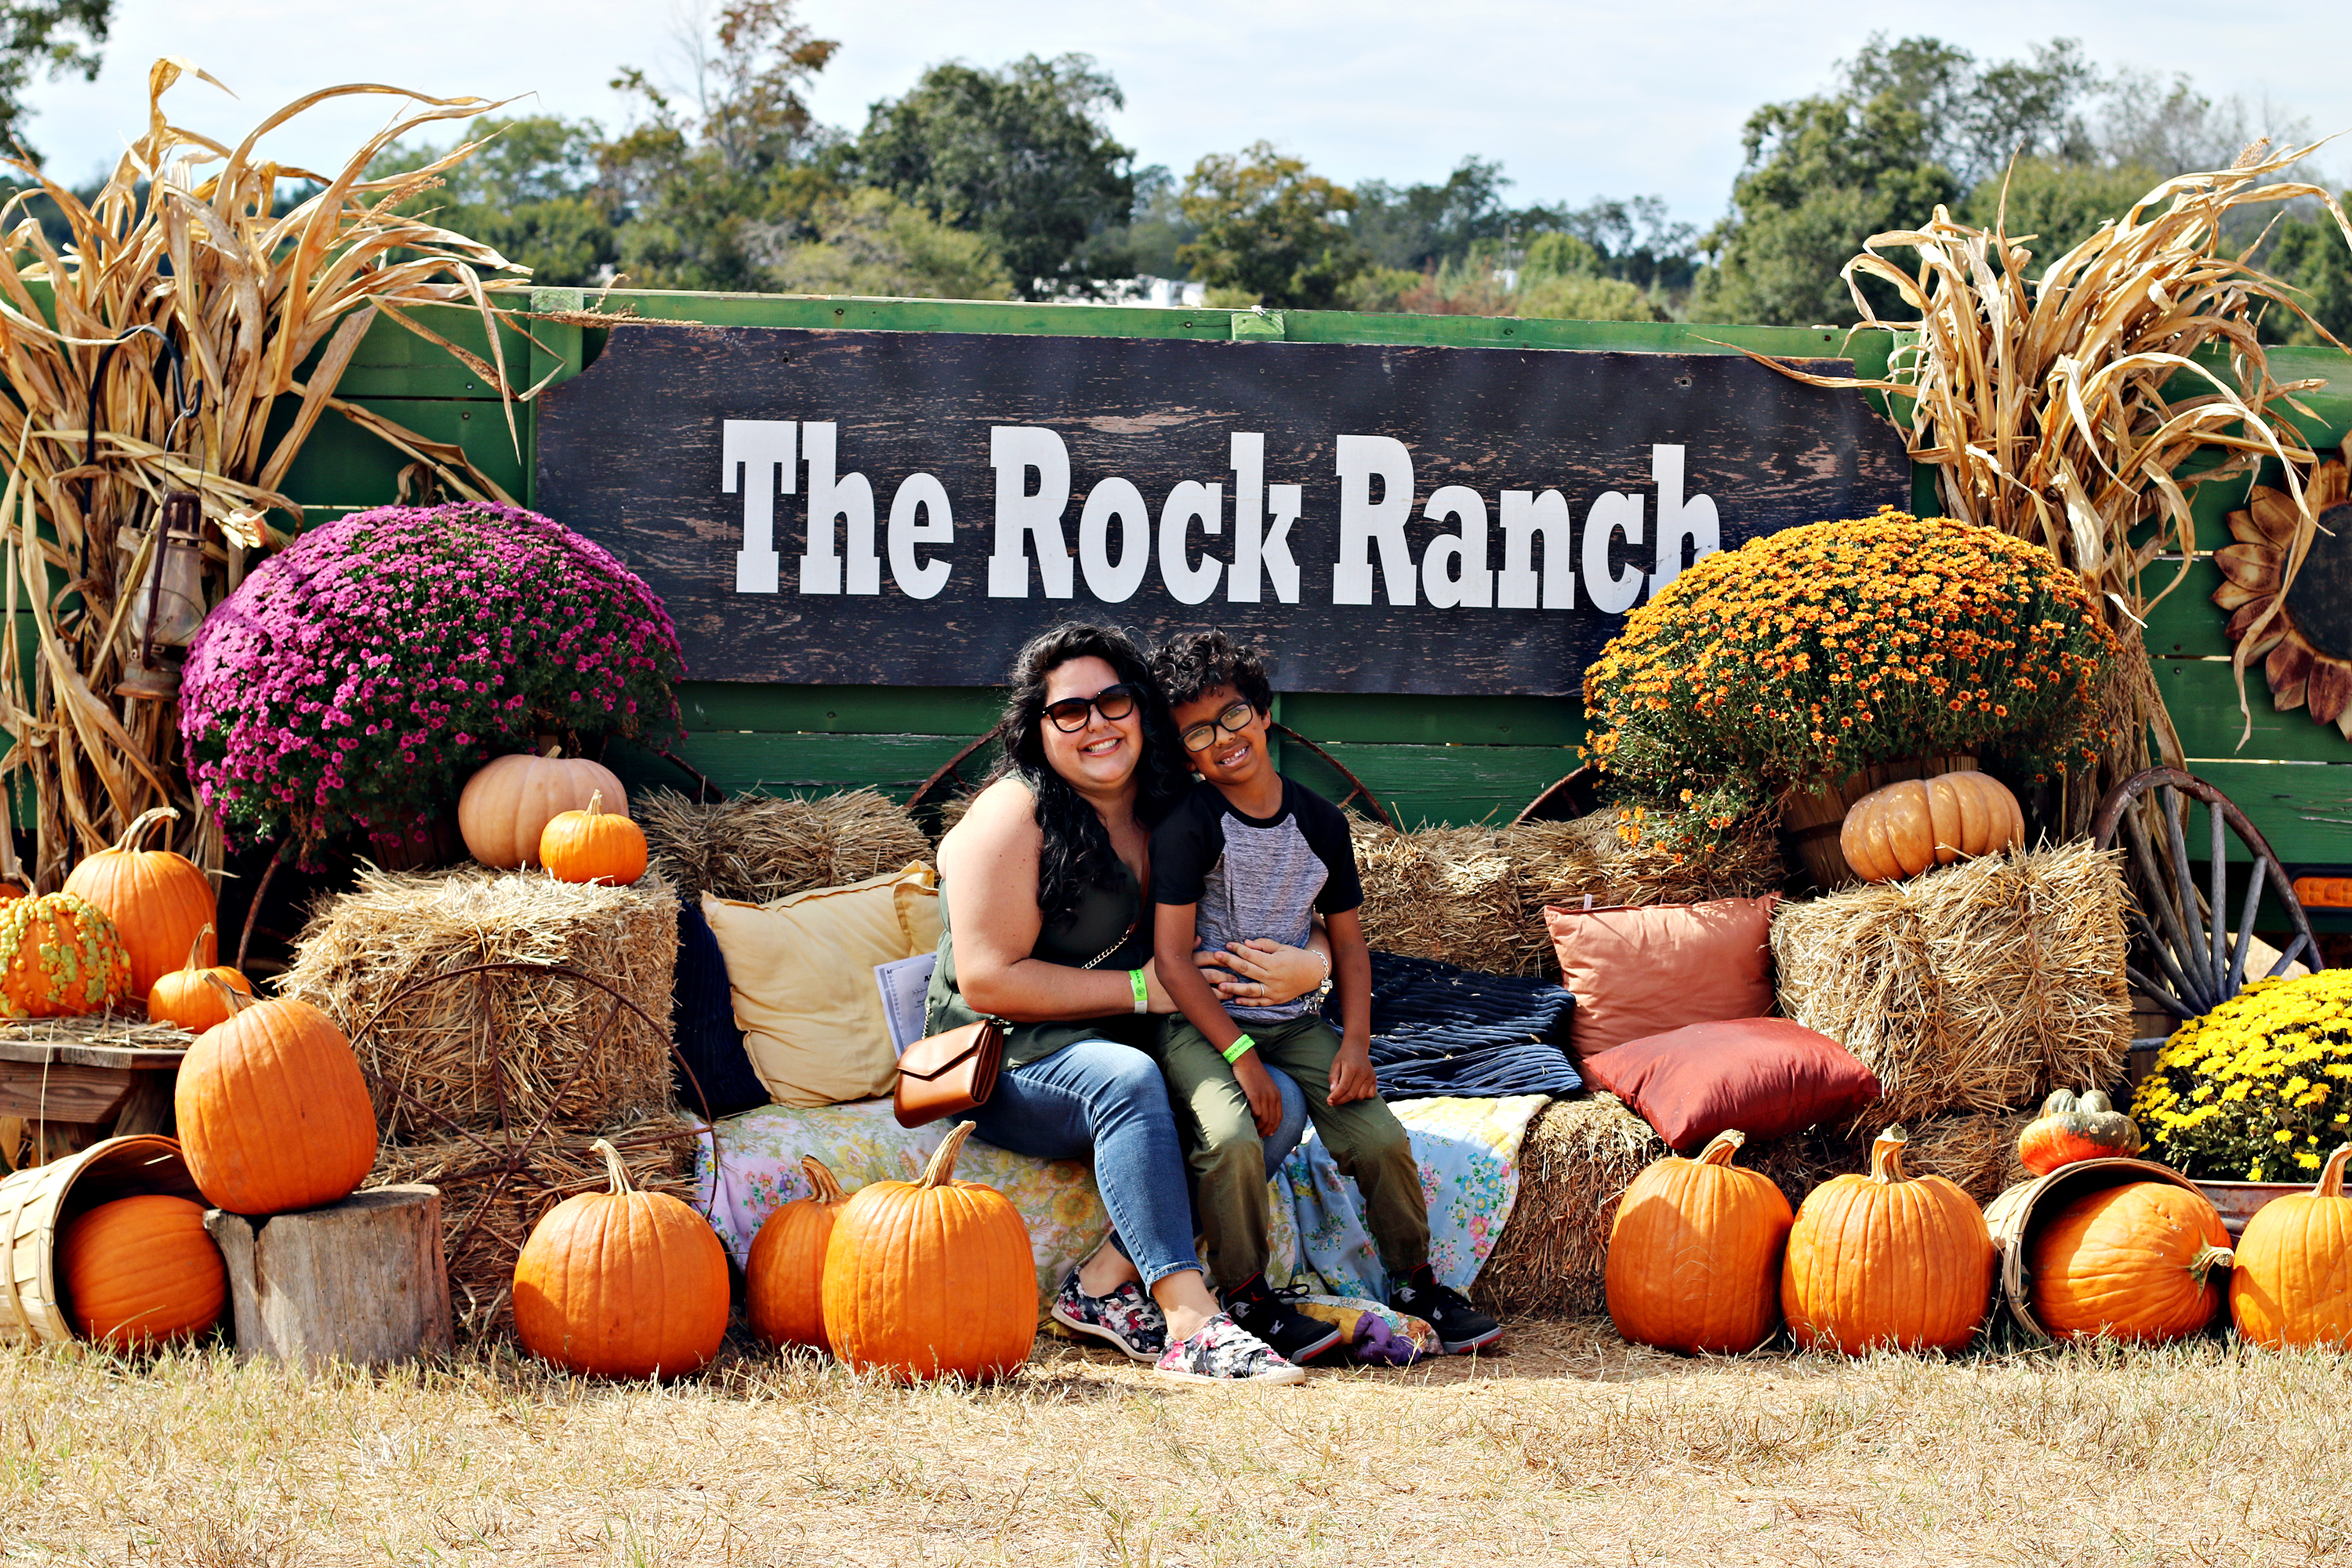 Mom and son sitting on hay, surrounded by pumpkins and mums, under a sign that says The Rock Ranch.